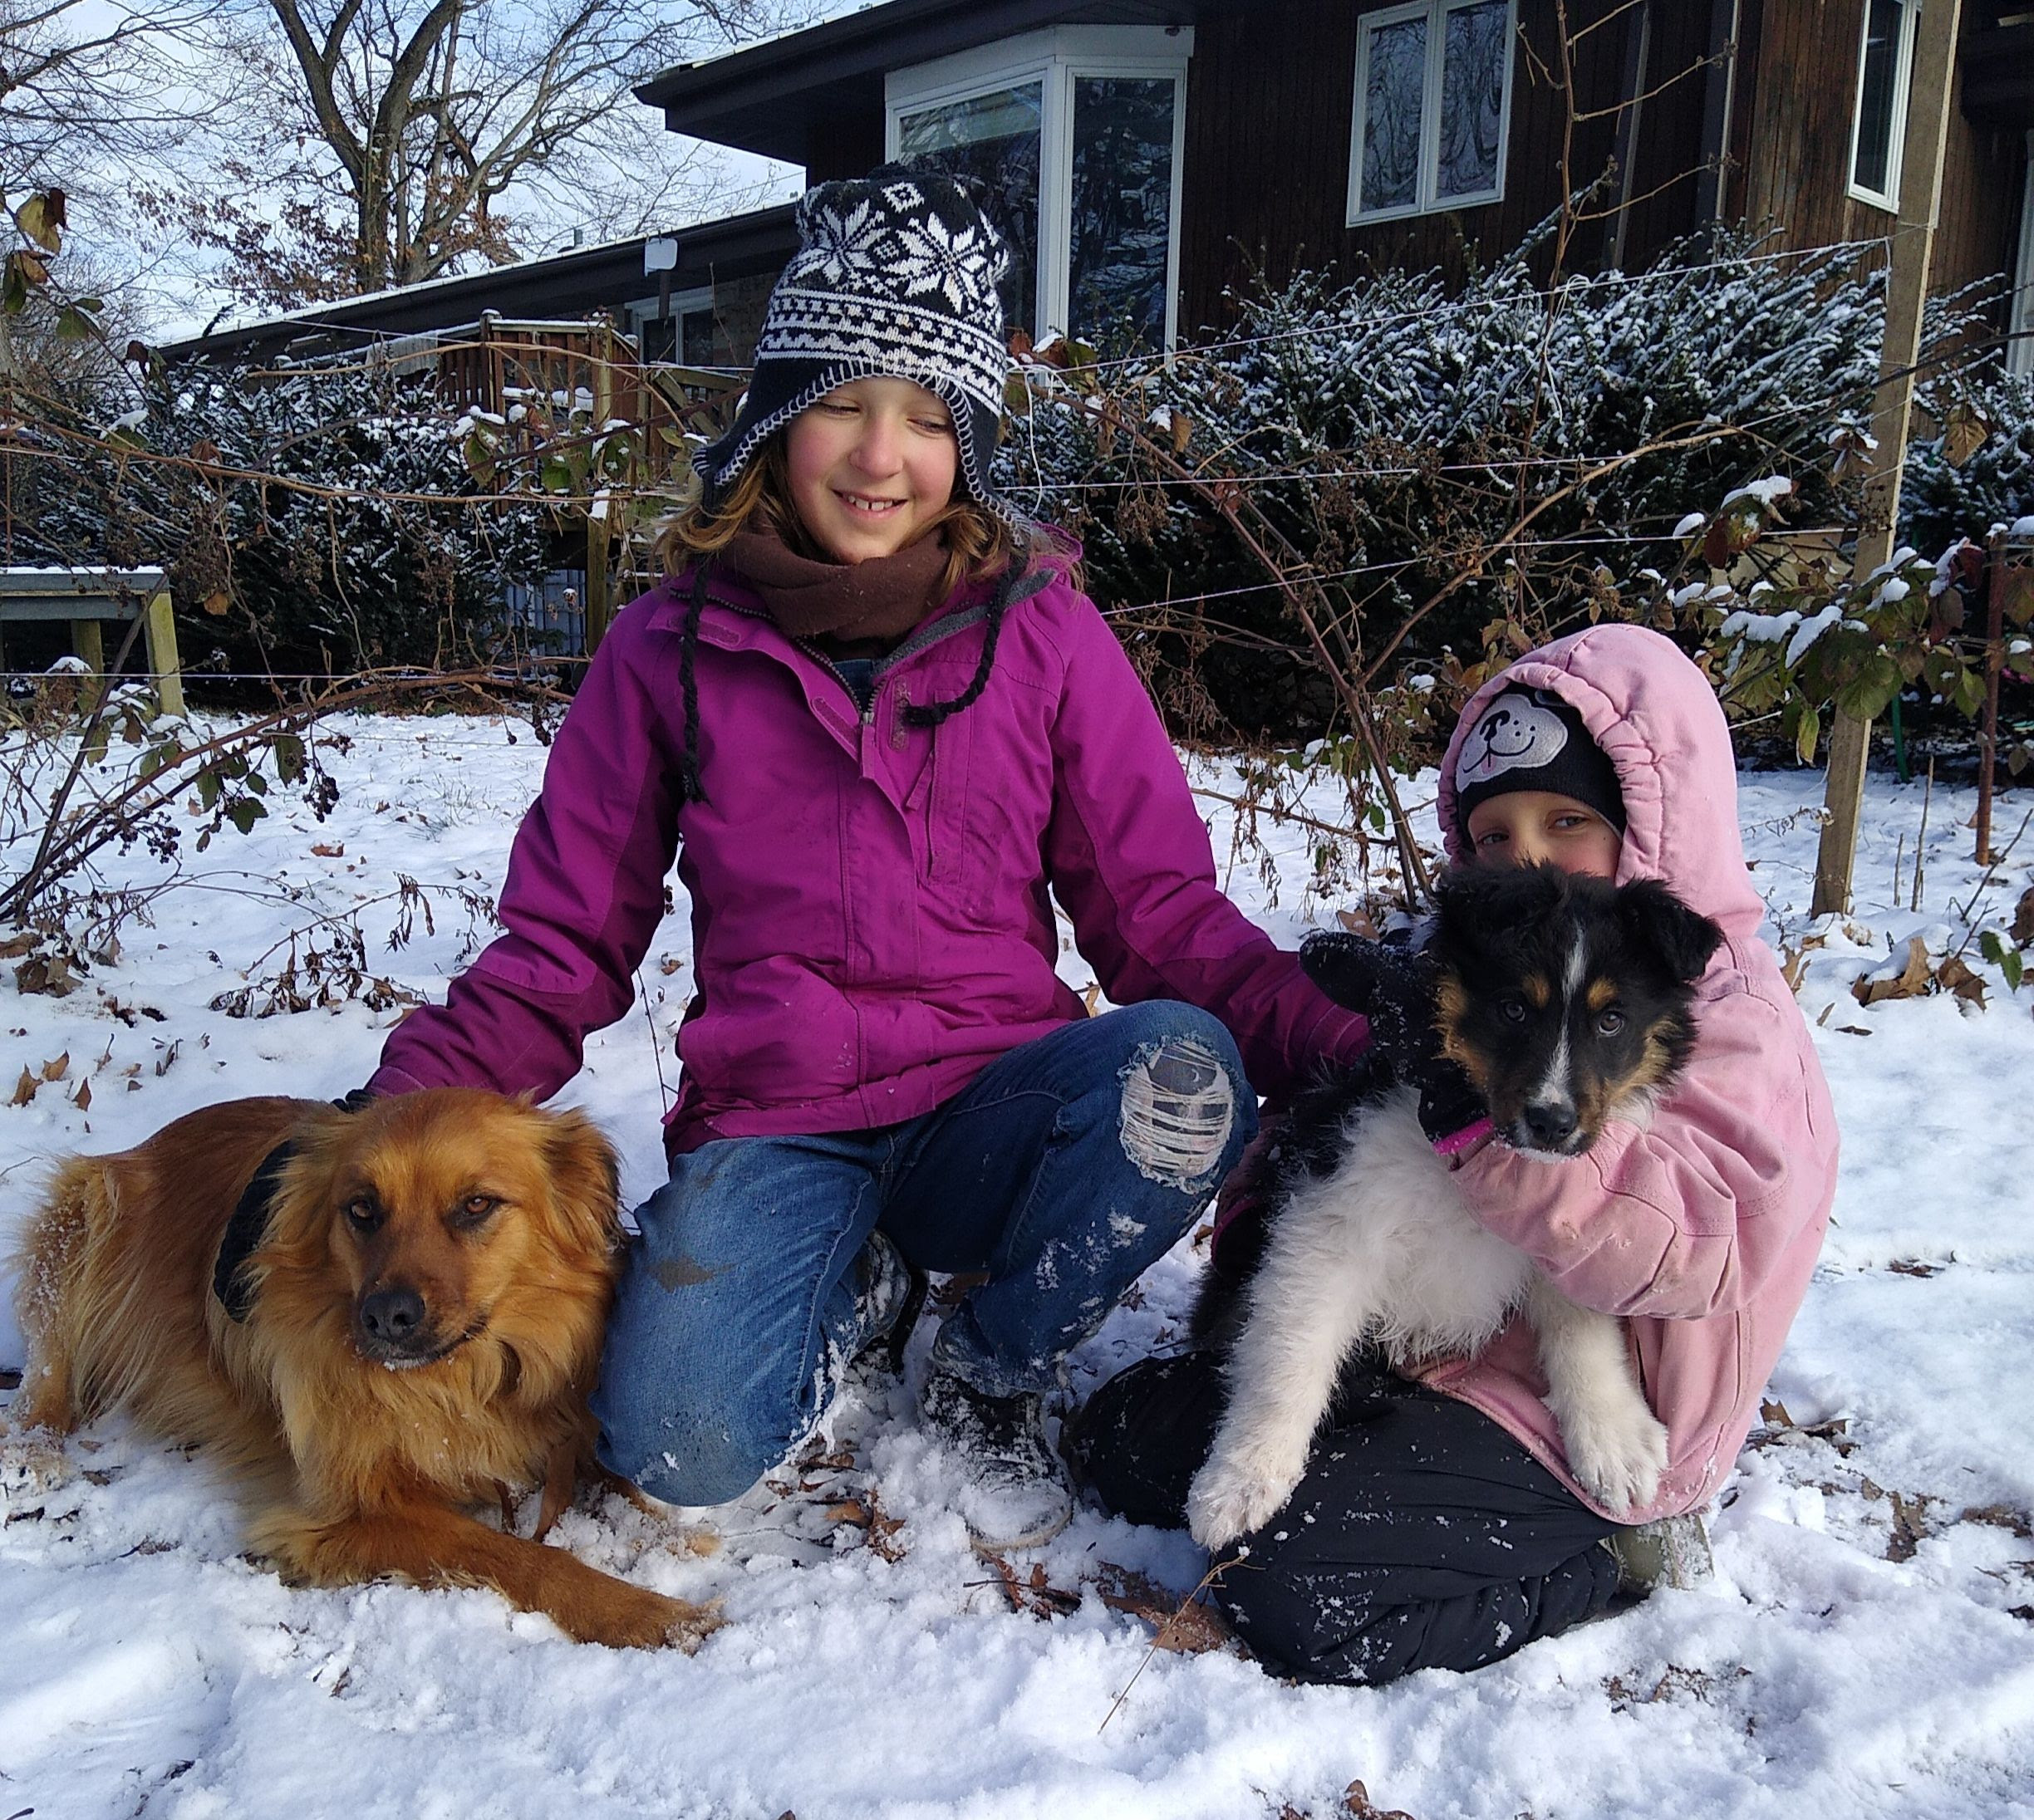 Evelyn and Olivia with their dogs in the snow.